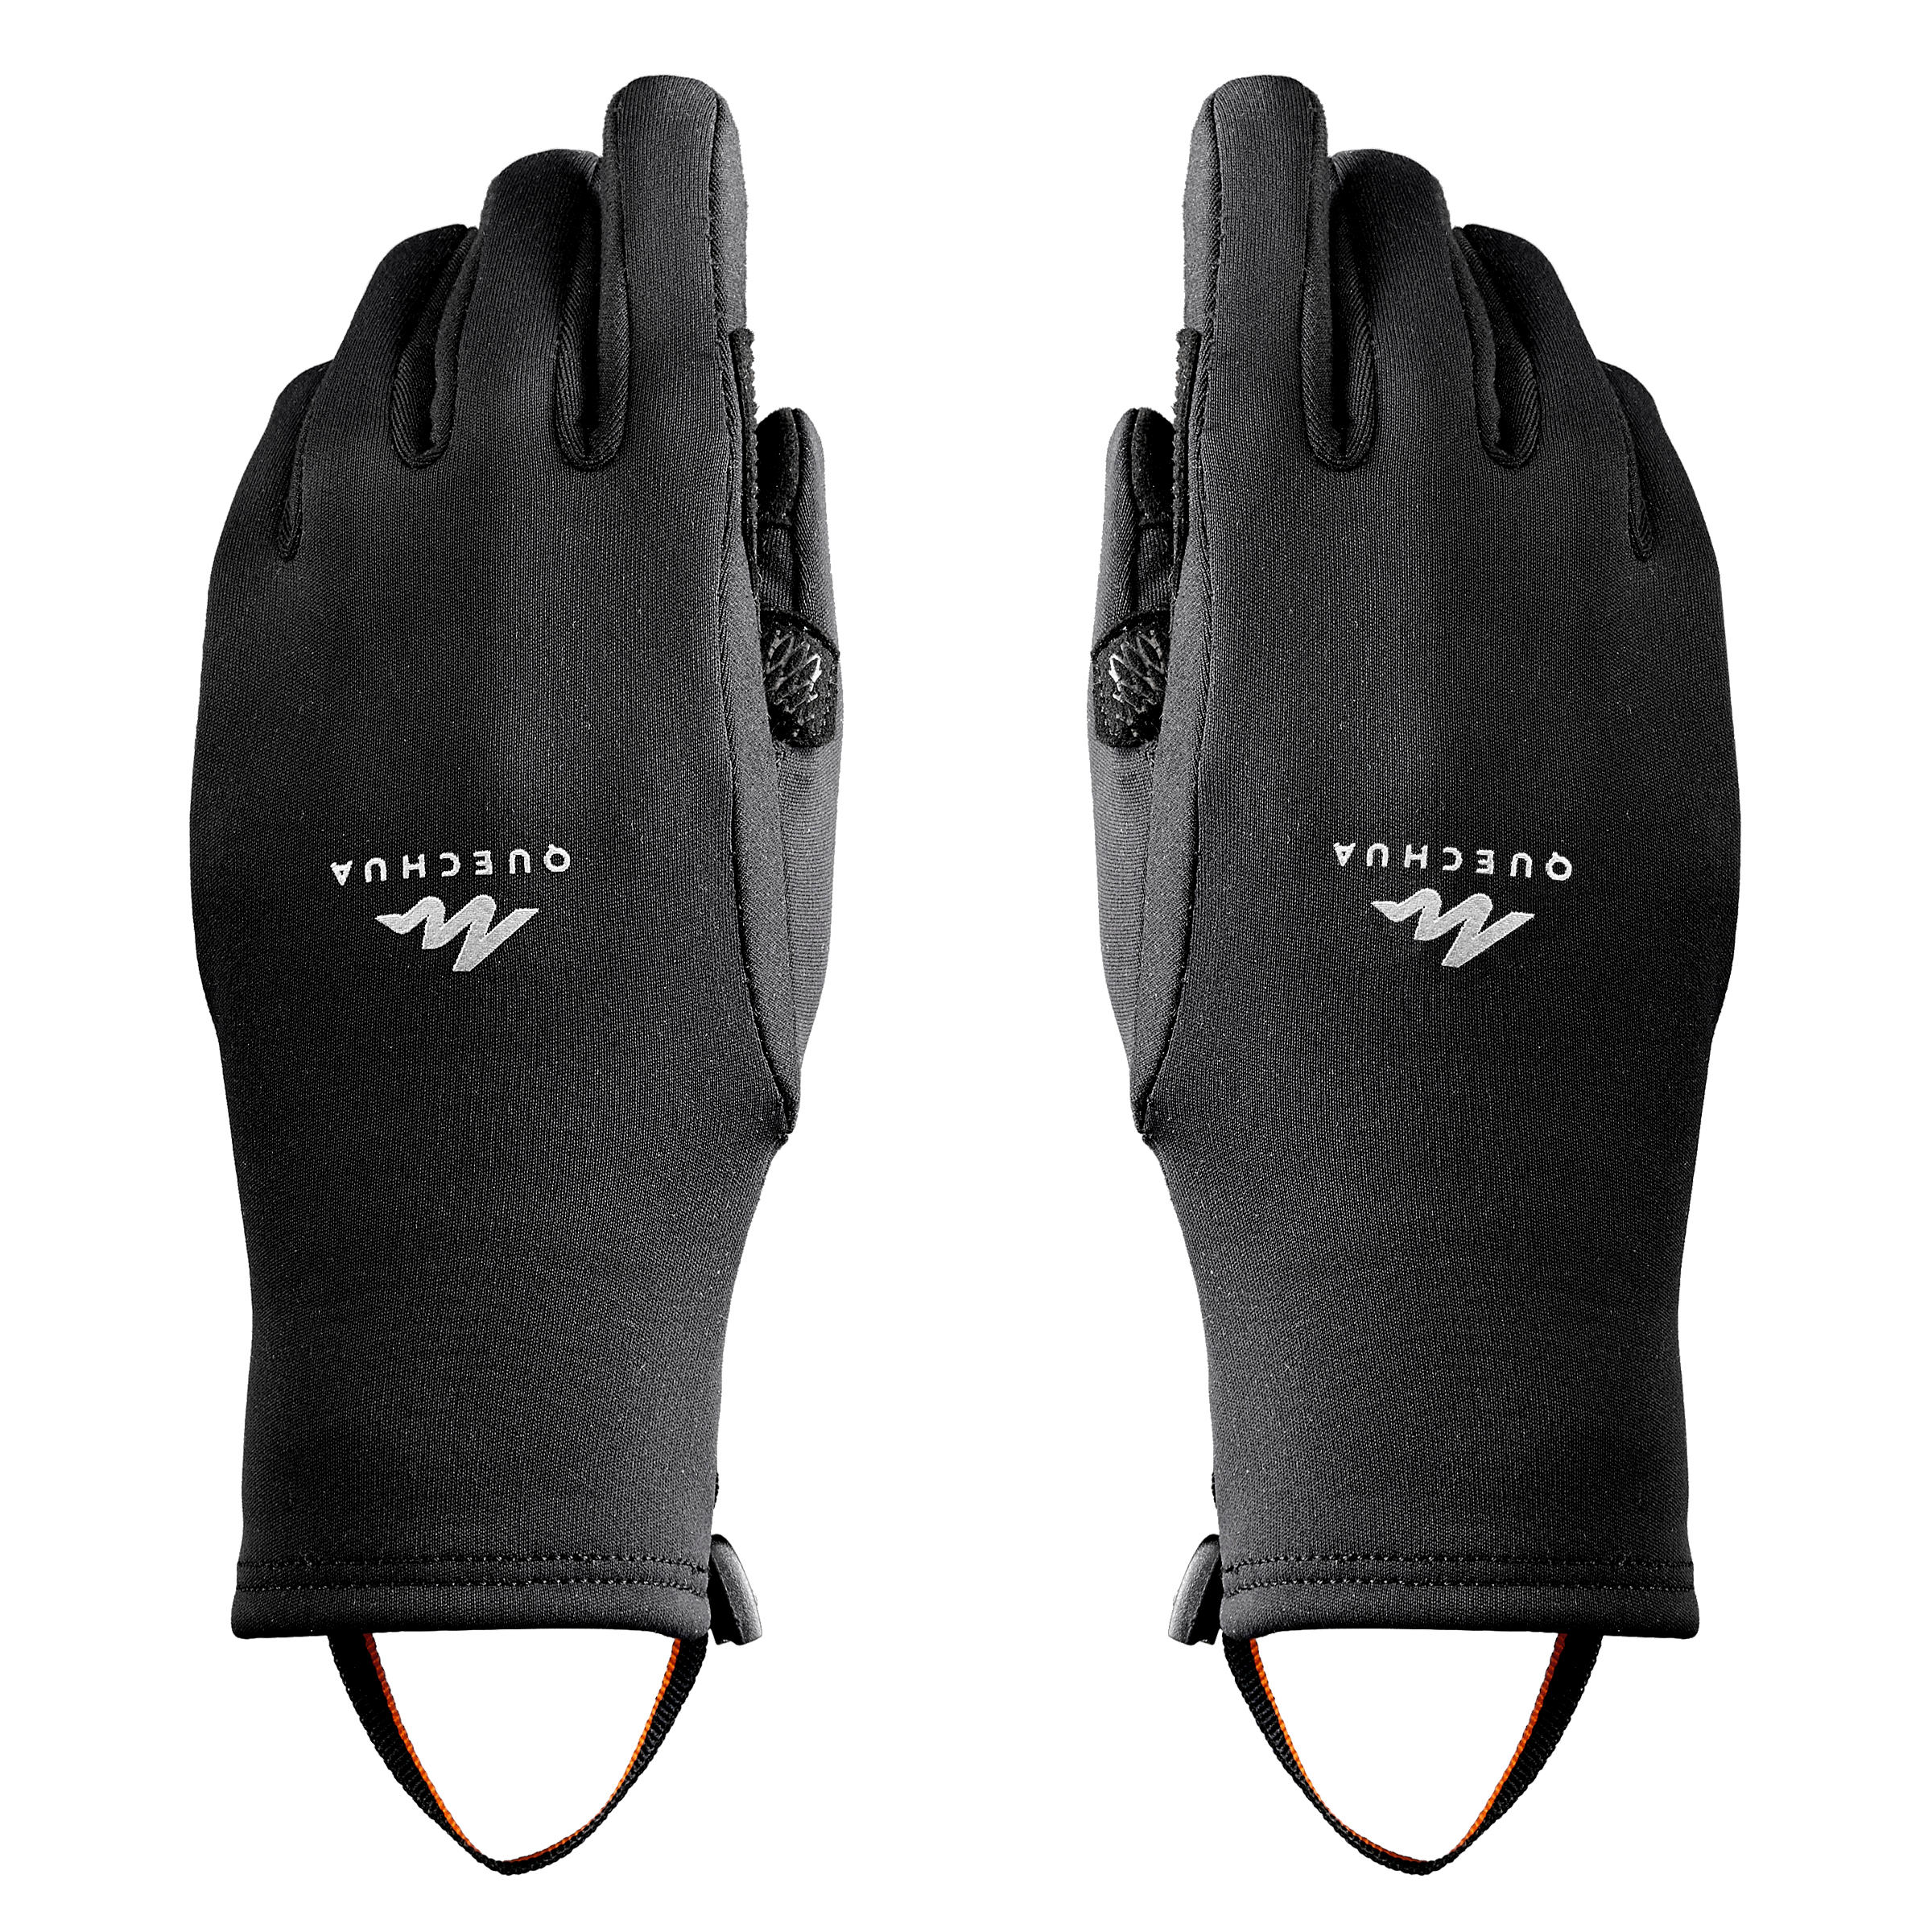 Kids' Touchscreen Compatible Hiking Gloves - SH500 STRETCH - 6-14 Years - 8 By QUECHUA   Decathlon